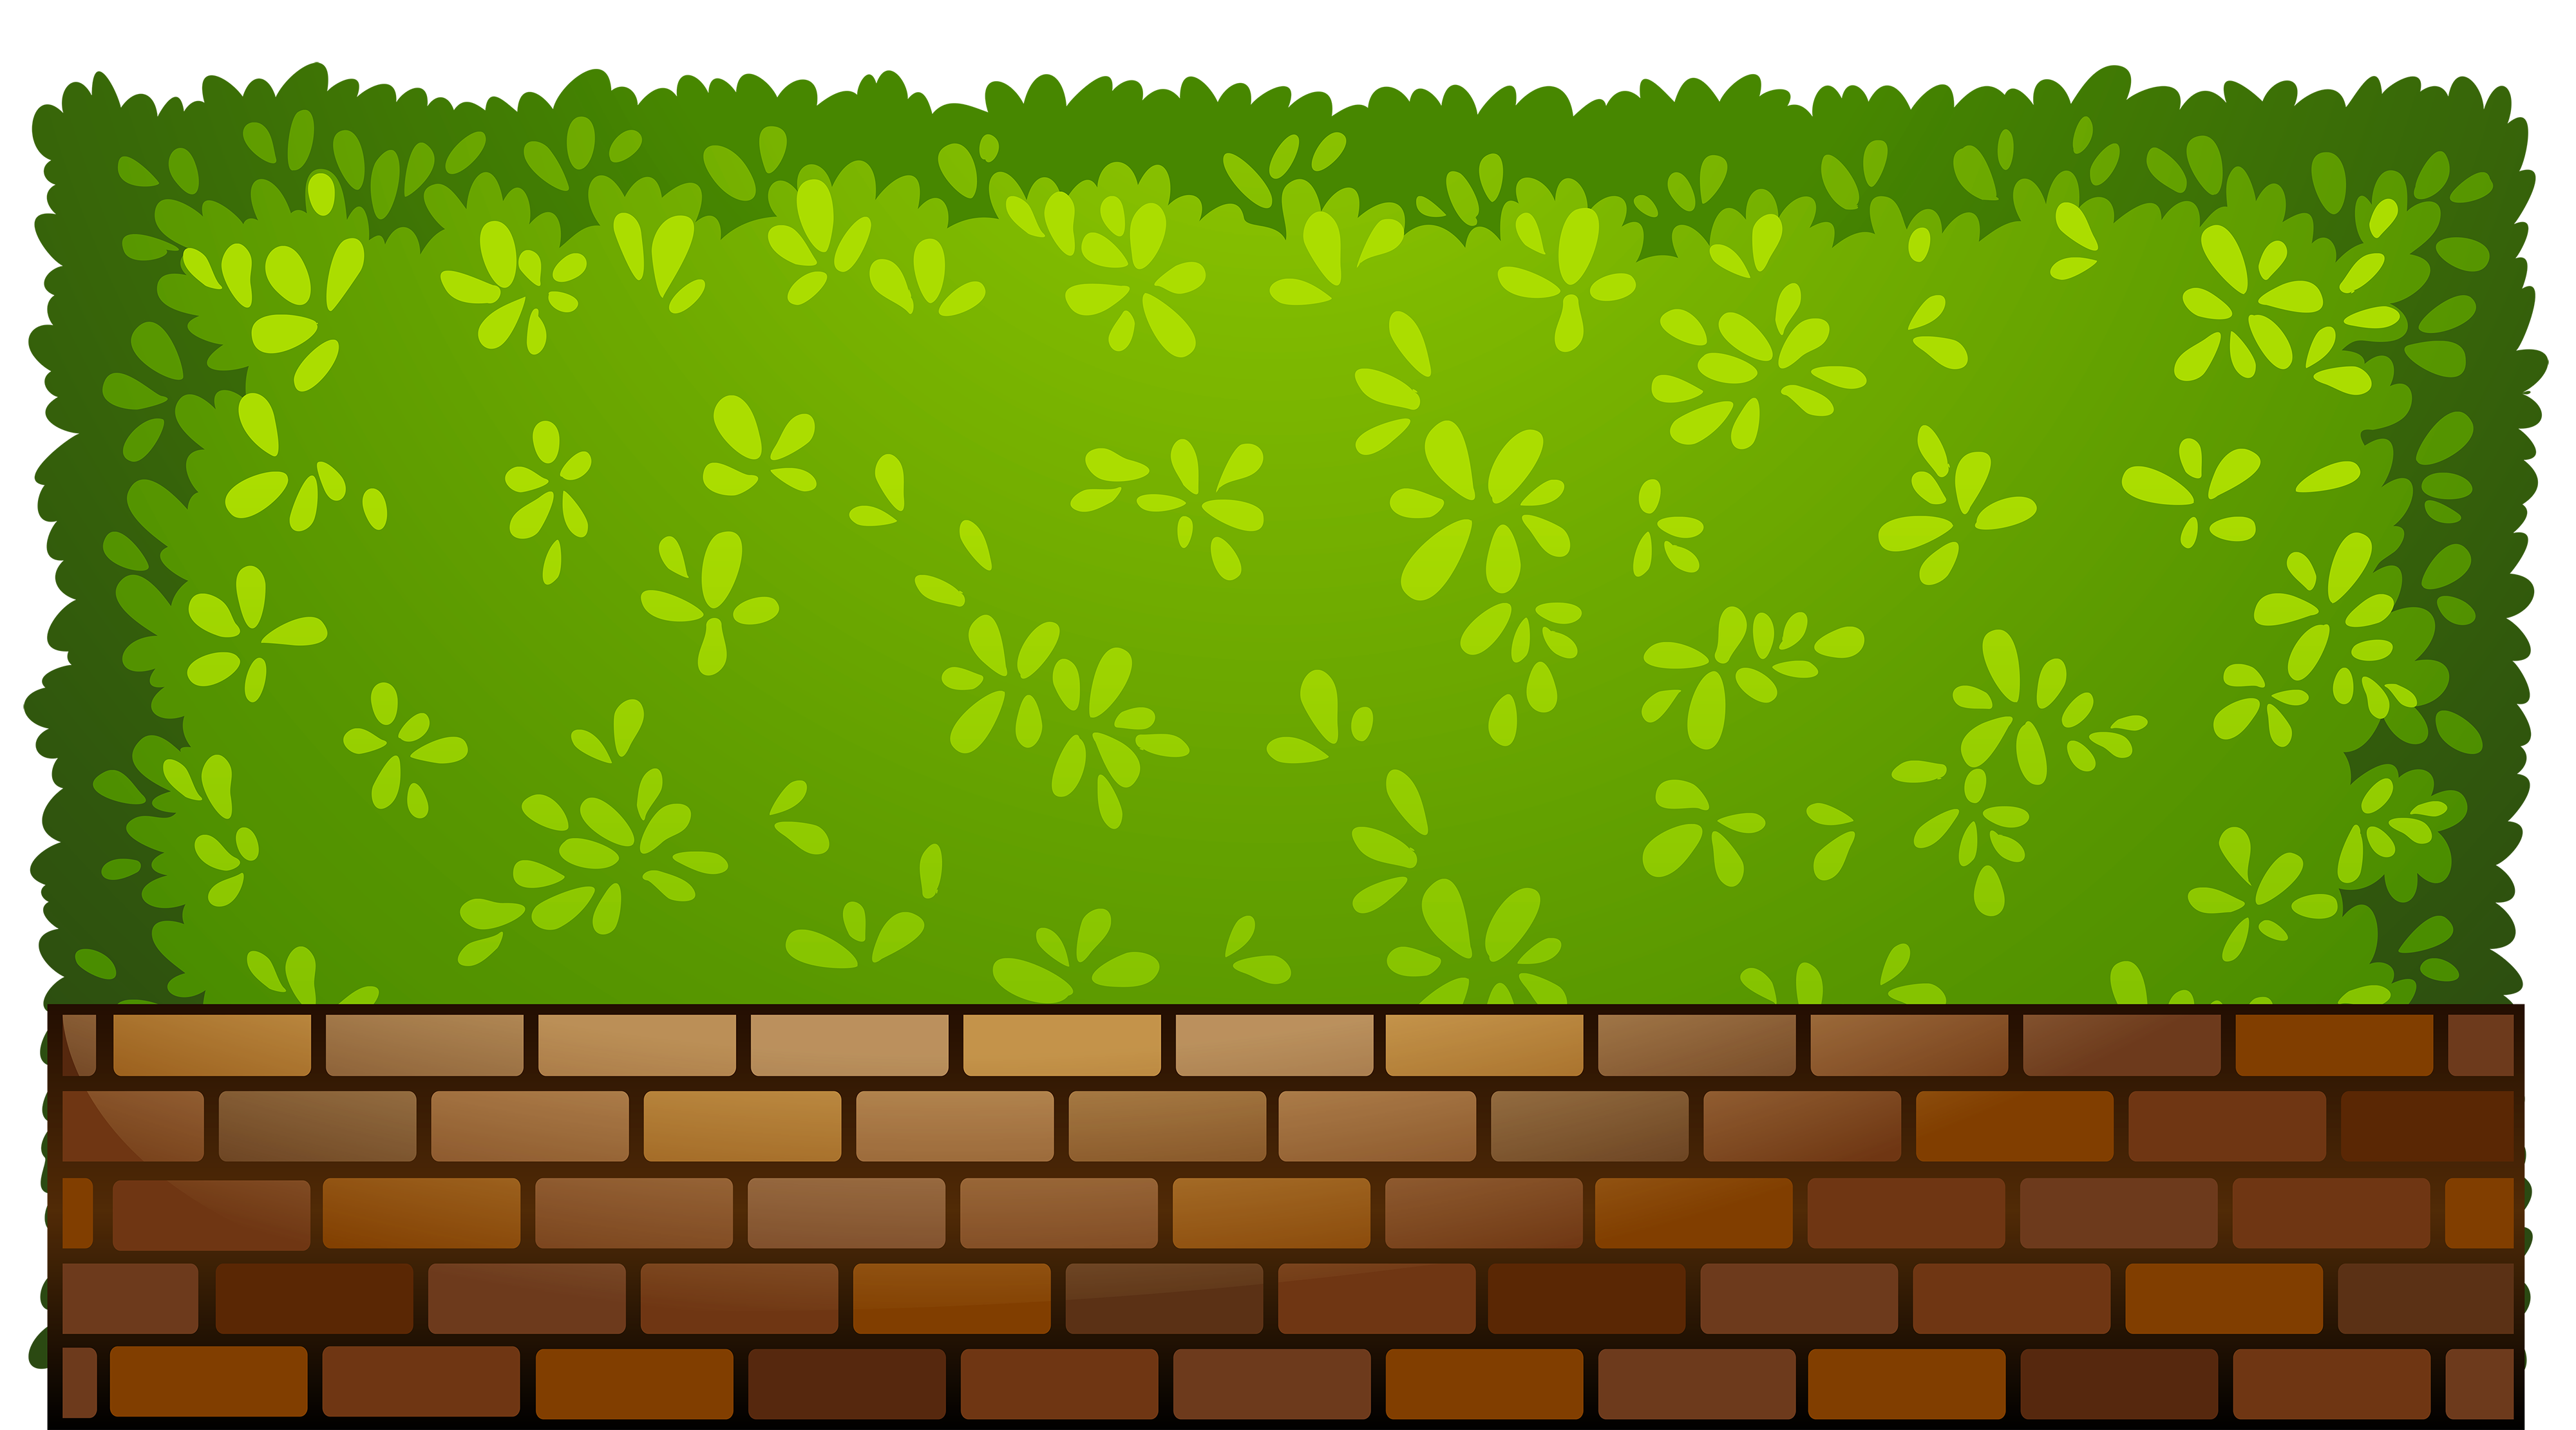 Brick wall clipart png. Fence with plants best